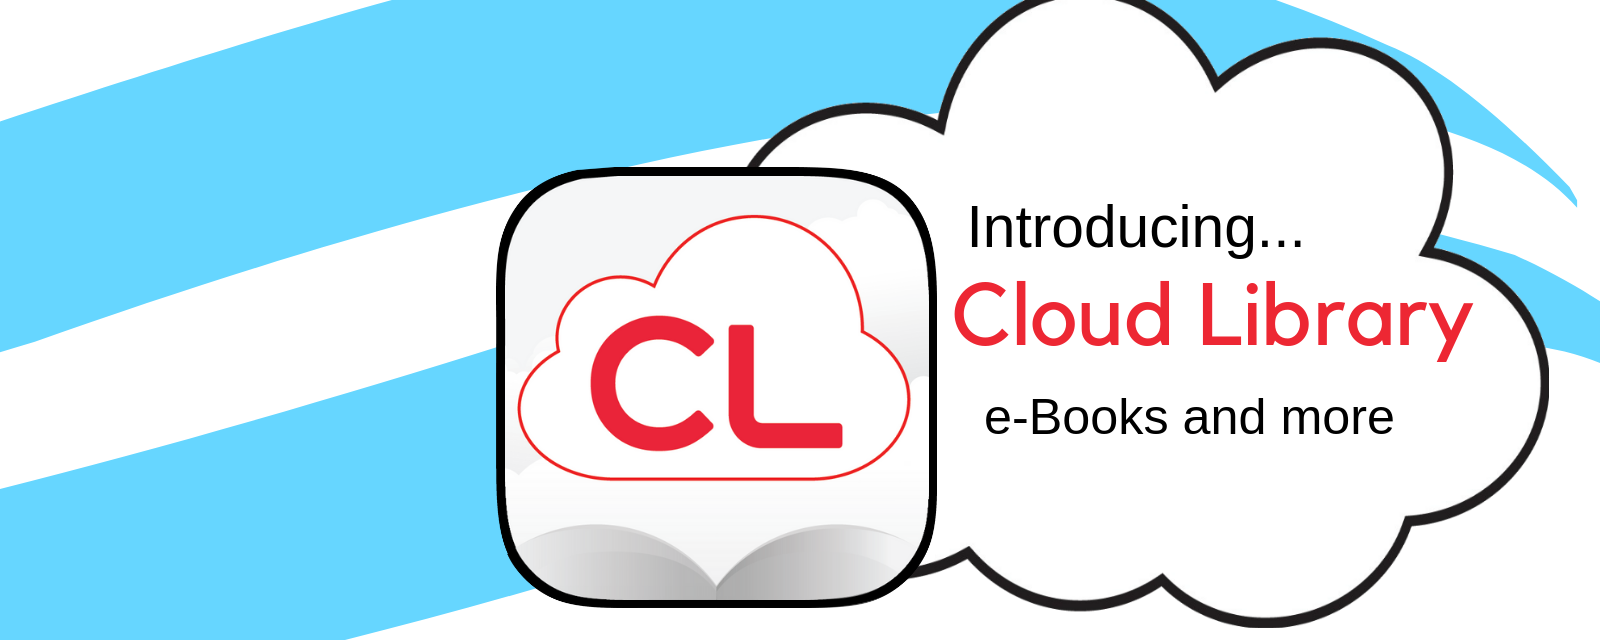 Cloud Library graphic